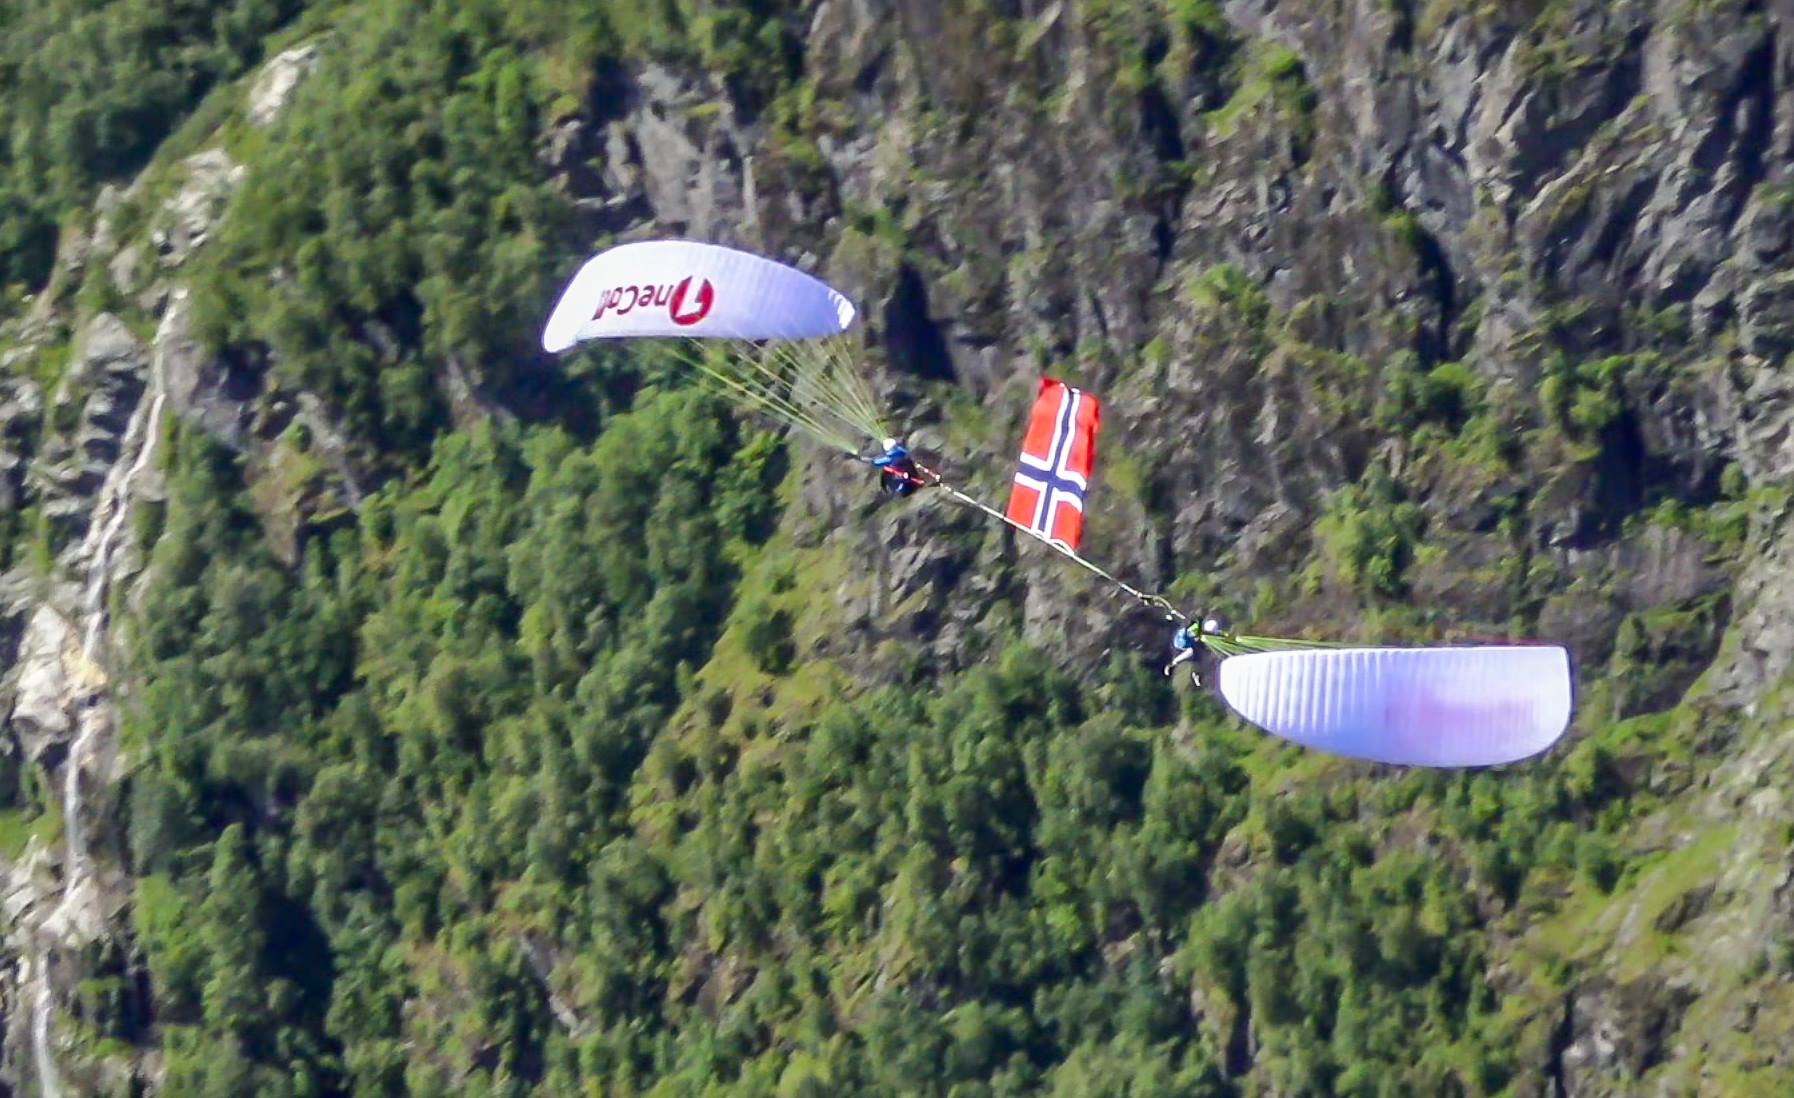 Norvegian flag on paragliding downplane